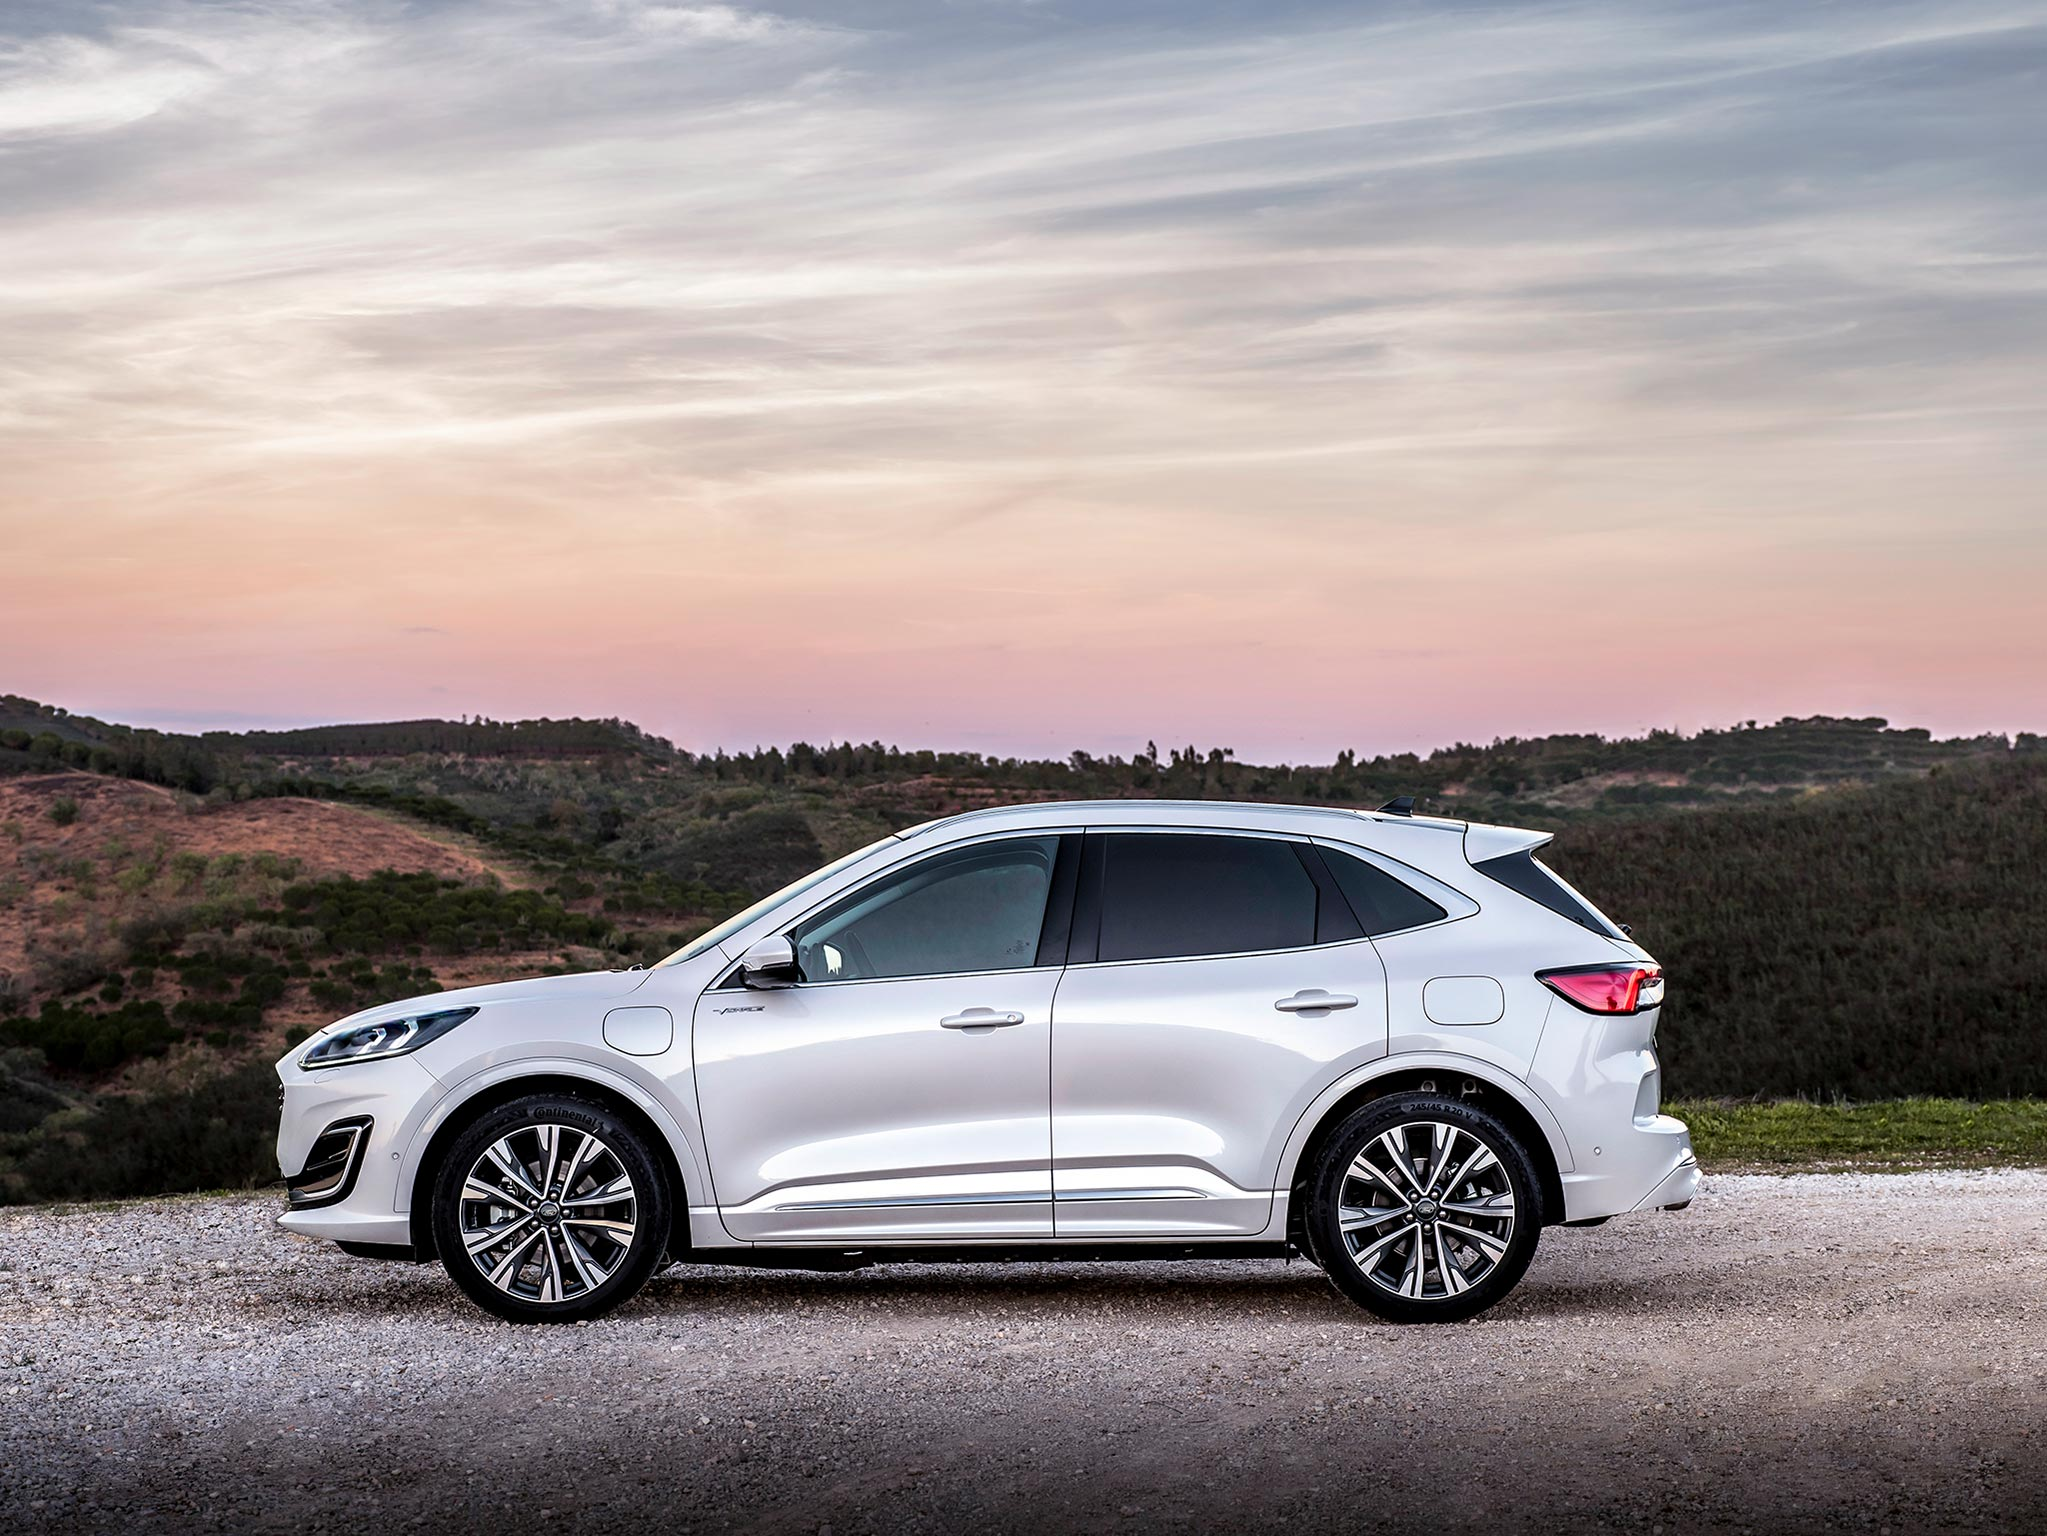 First Drive The Ford Kuga Phev Is A Handsome Suv That Has Its Downsides Shropshire Star